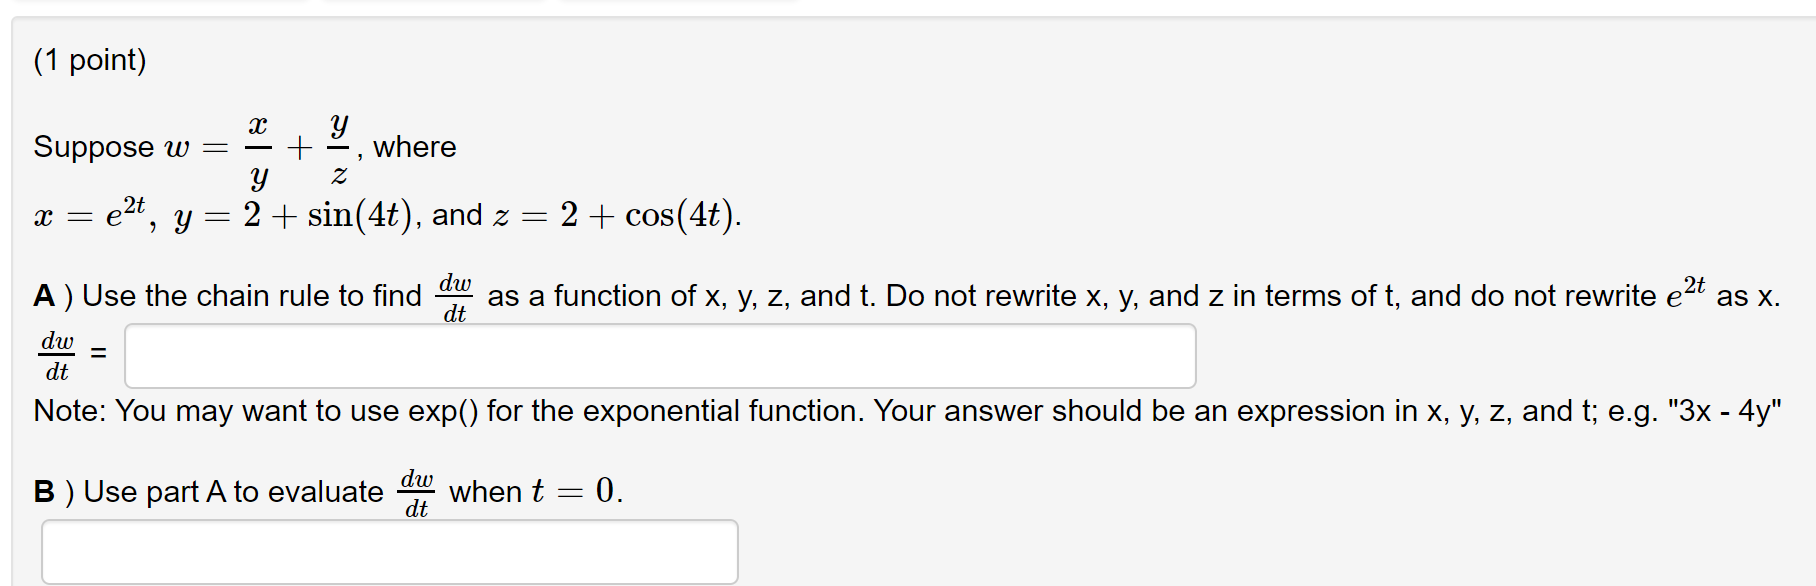 (1 point) Suppose w = +9, where Y Z x = ezt, y= 2 + sin(4t), and z = 2 + cos(4t). A) Use the chain rule to find aw as a func